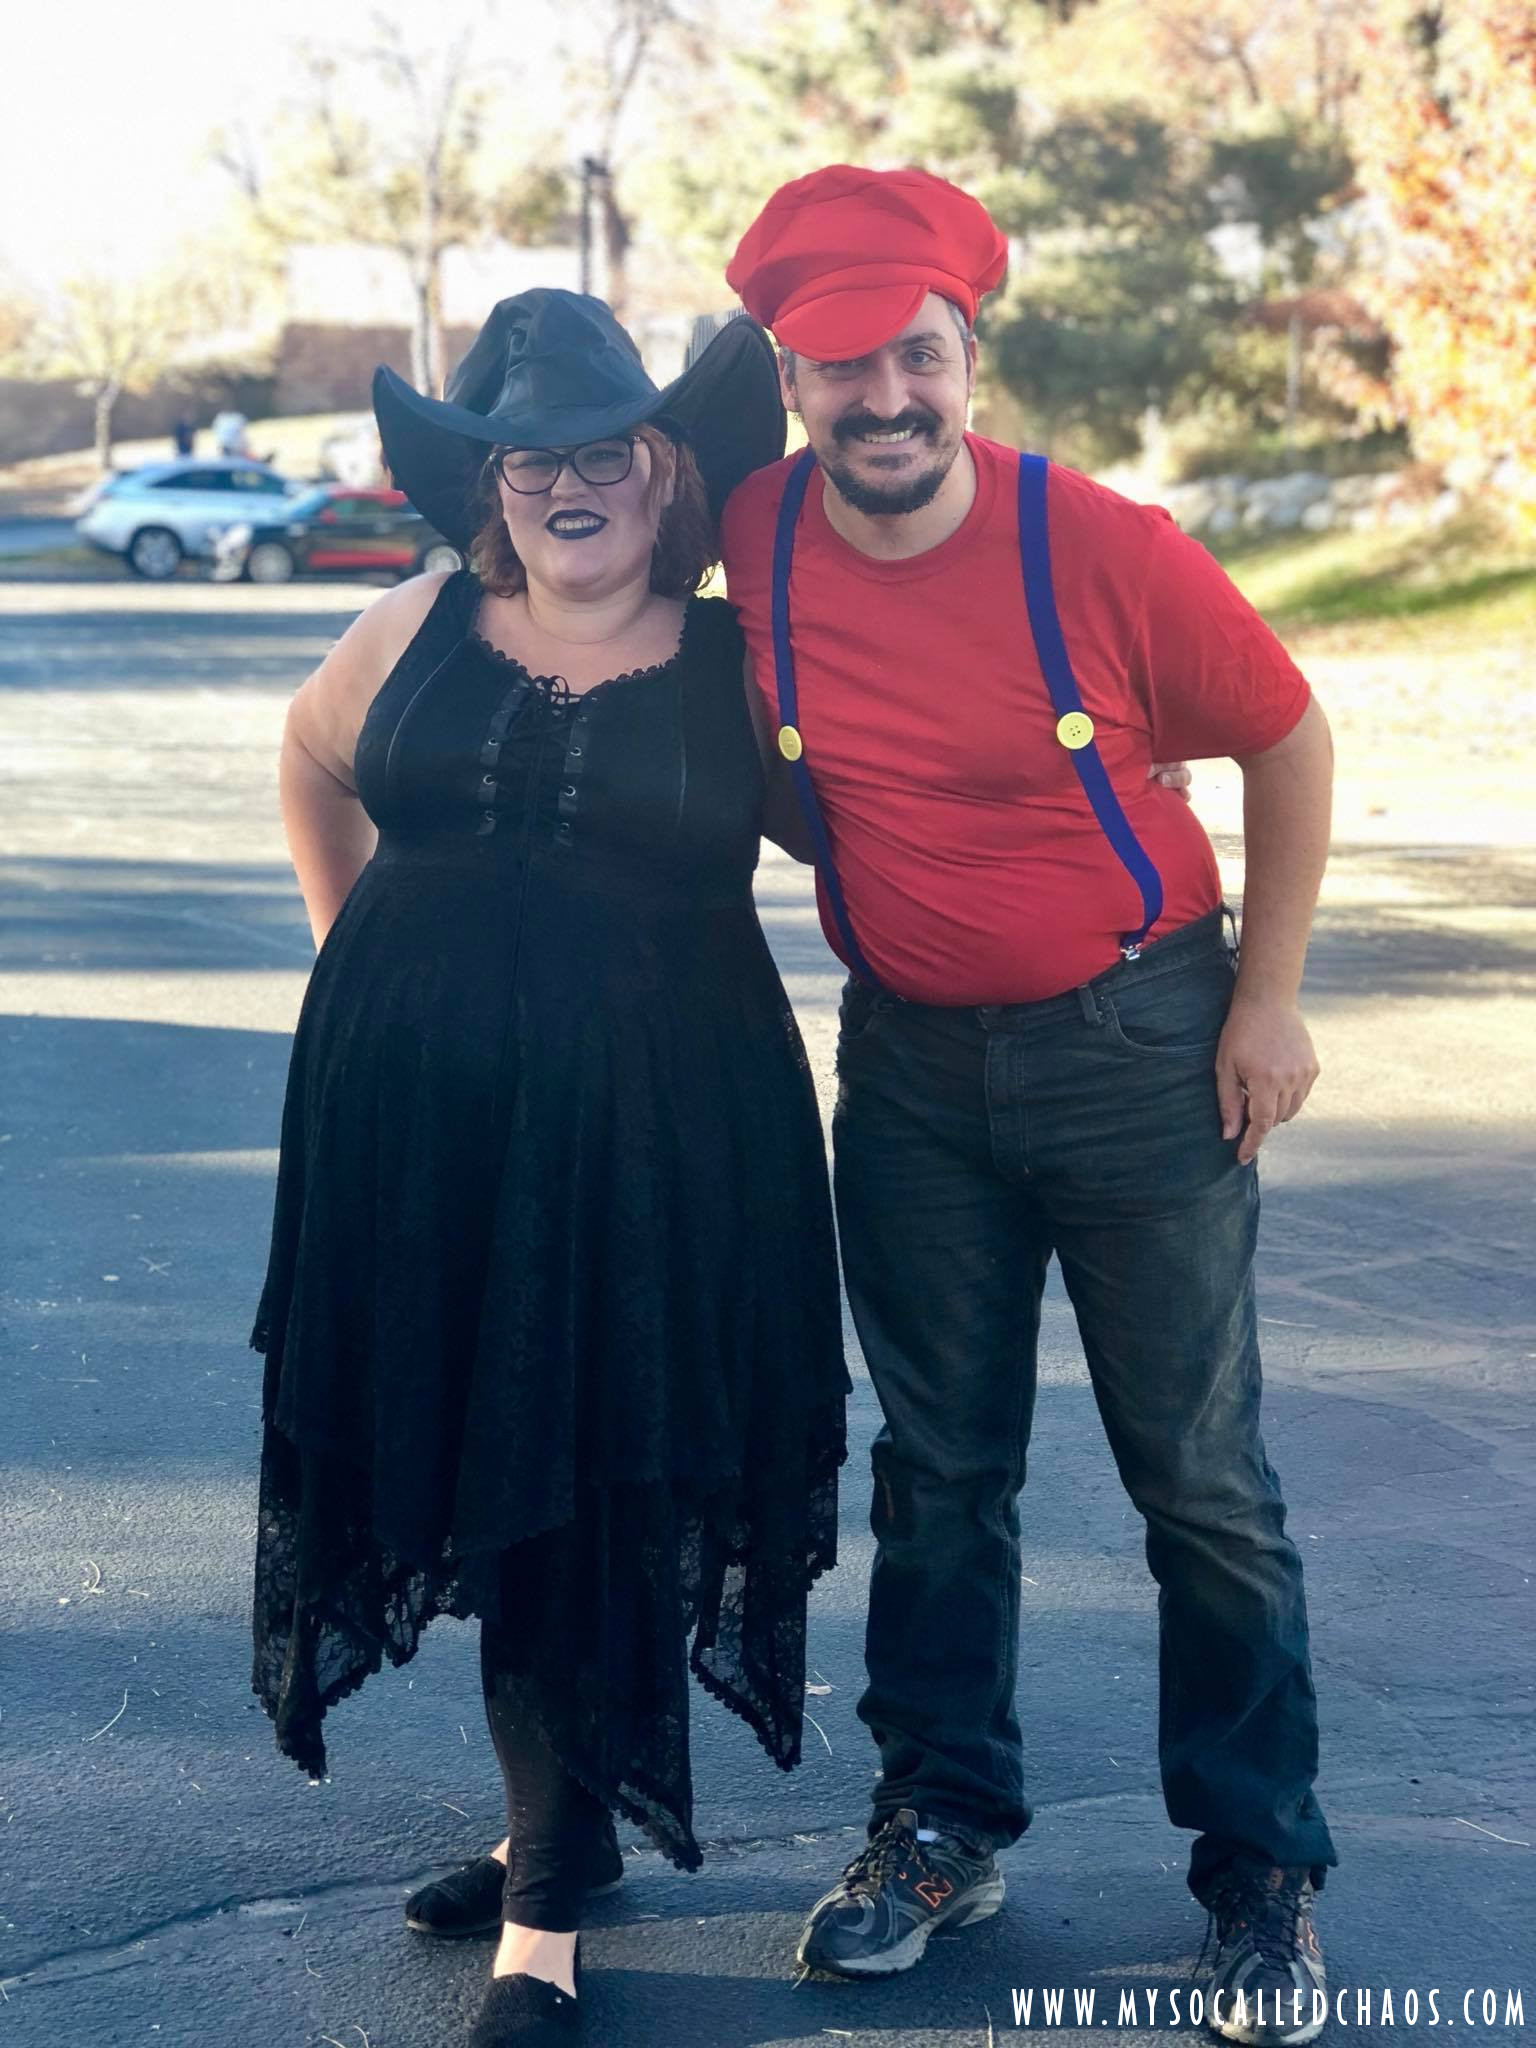 C and me for Halloween